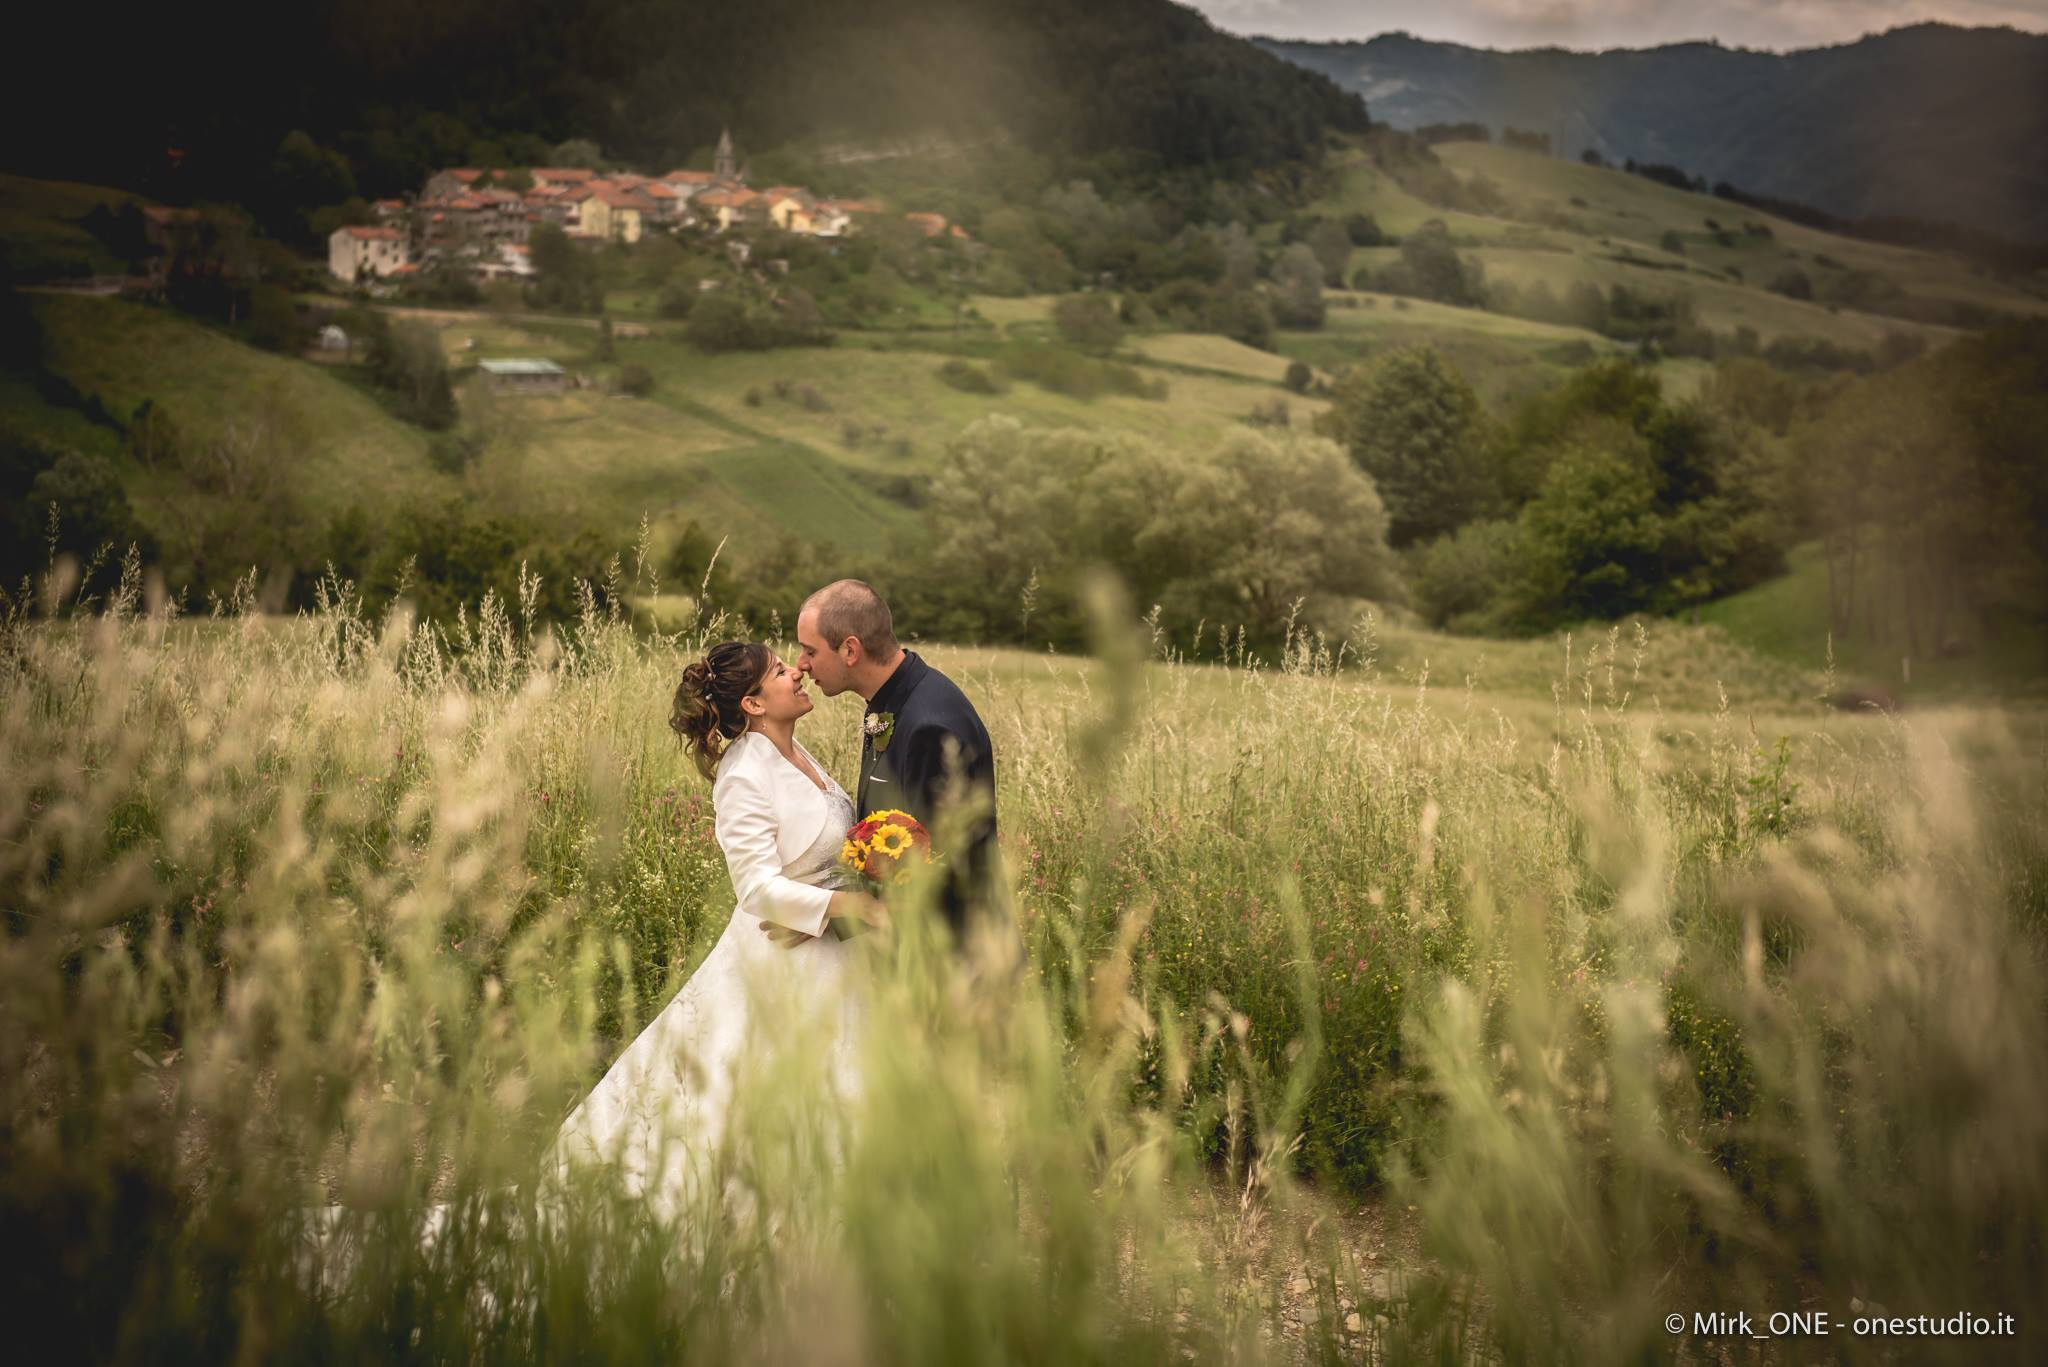 http://lnx.mirkone.it/wp-content/uploads/2015/07/mirk_ONE-fotografo-matrimonio-00806.jpg